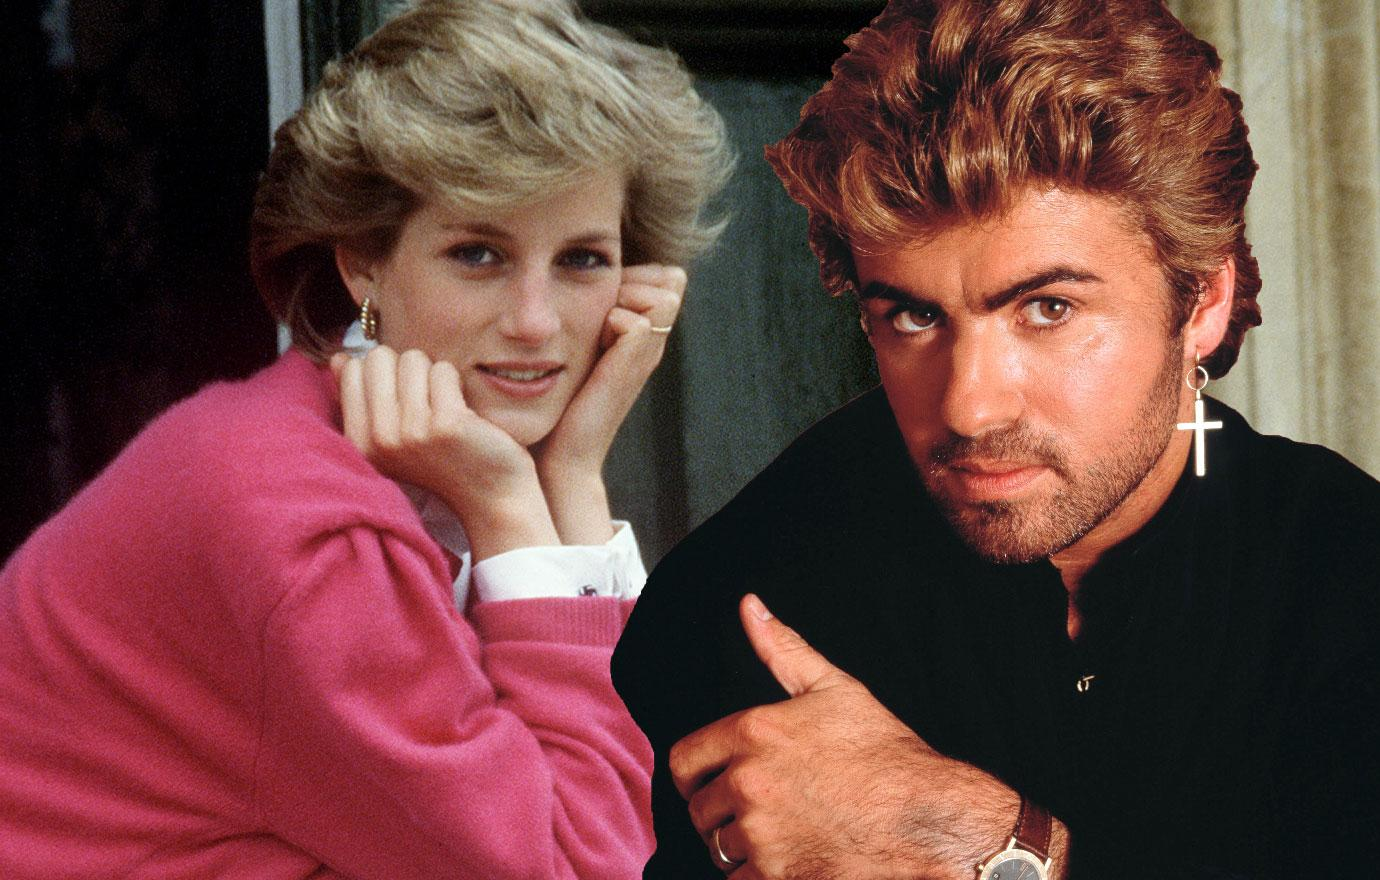 Diana Confided Divorce Problems To George Michael